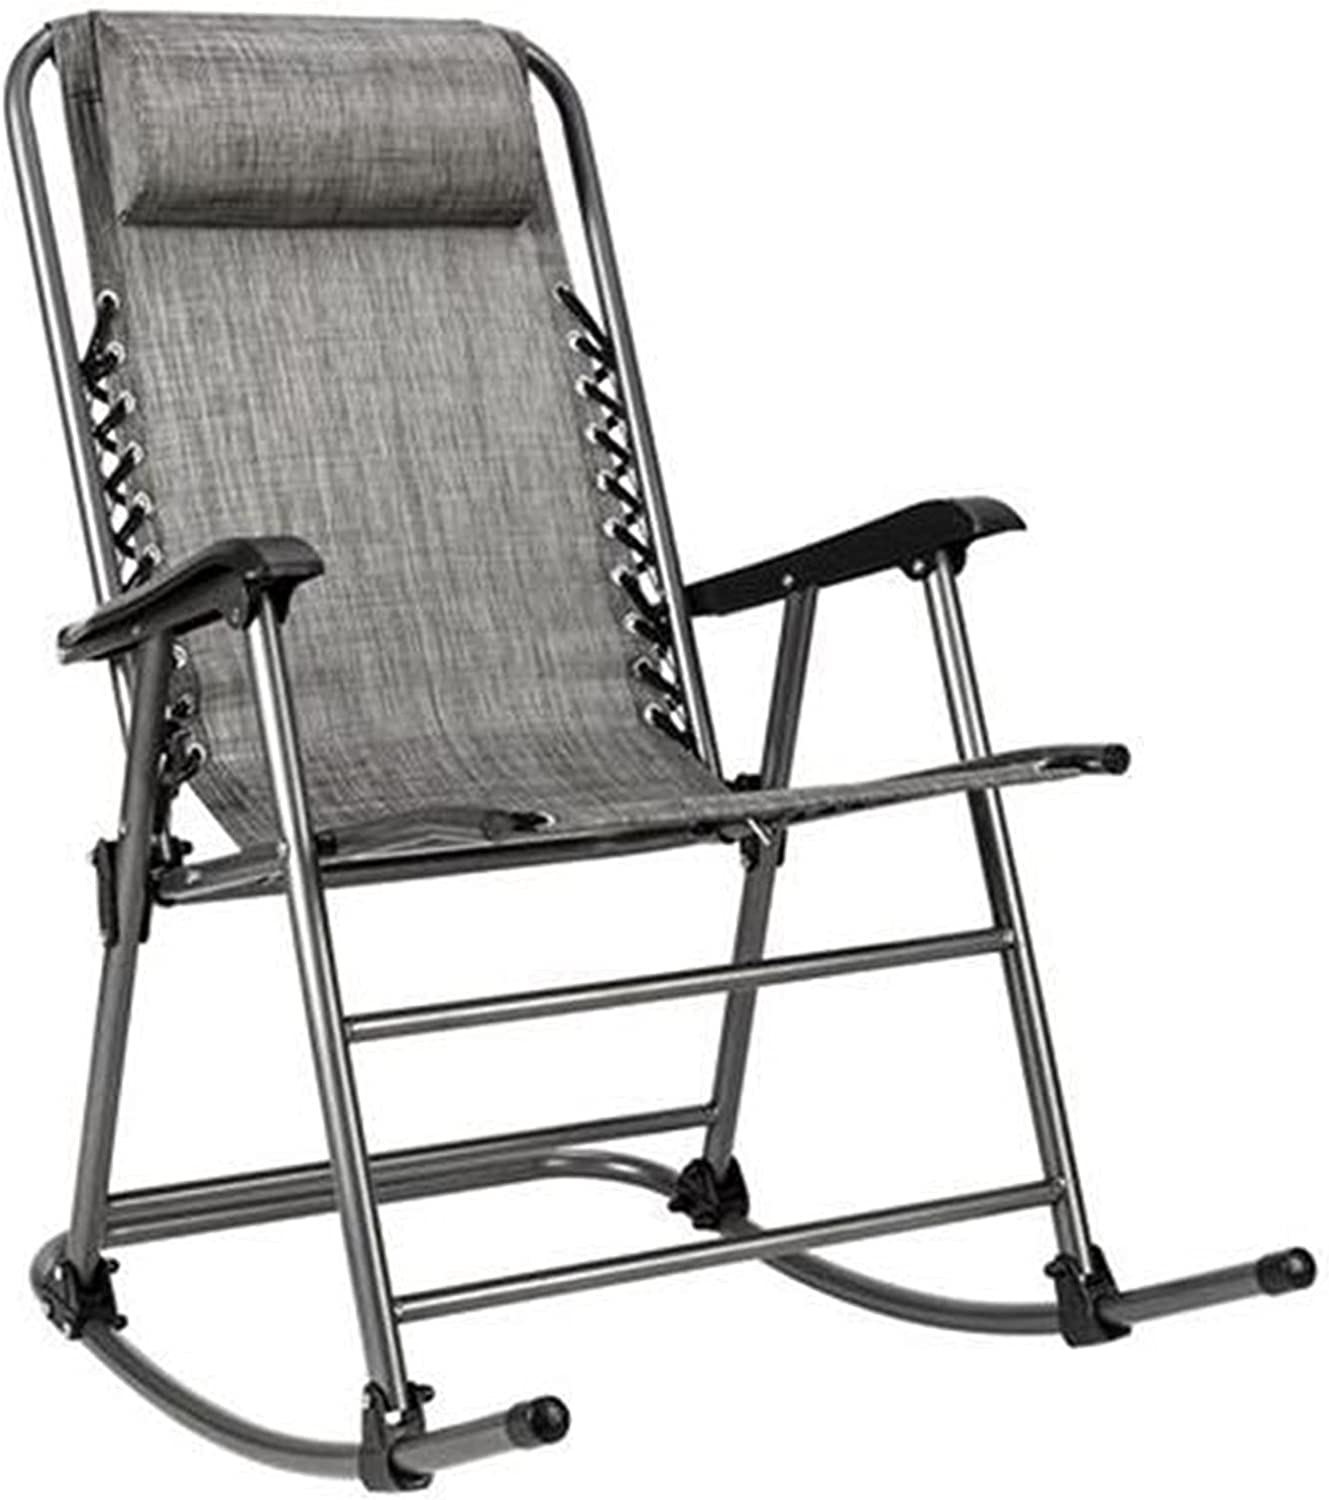 Outdoor Leisure Hammock Discount is also underway 22 70% OFF Outlet Rocking Tube Chair-Gray Chair